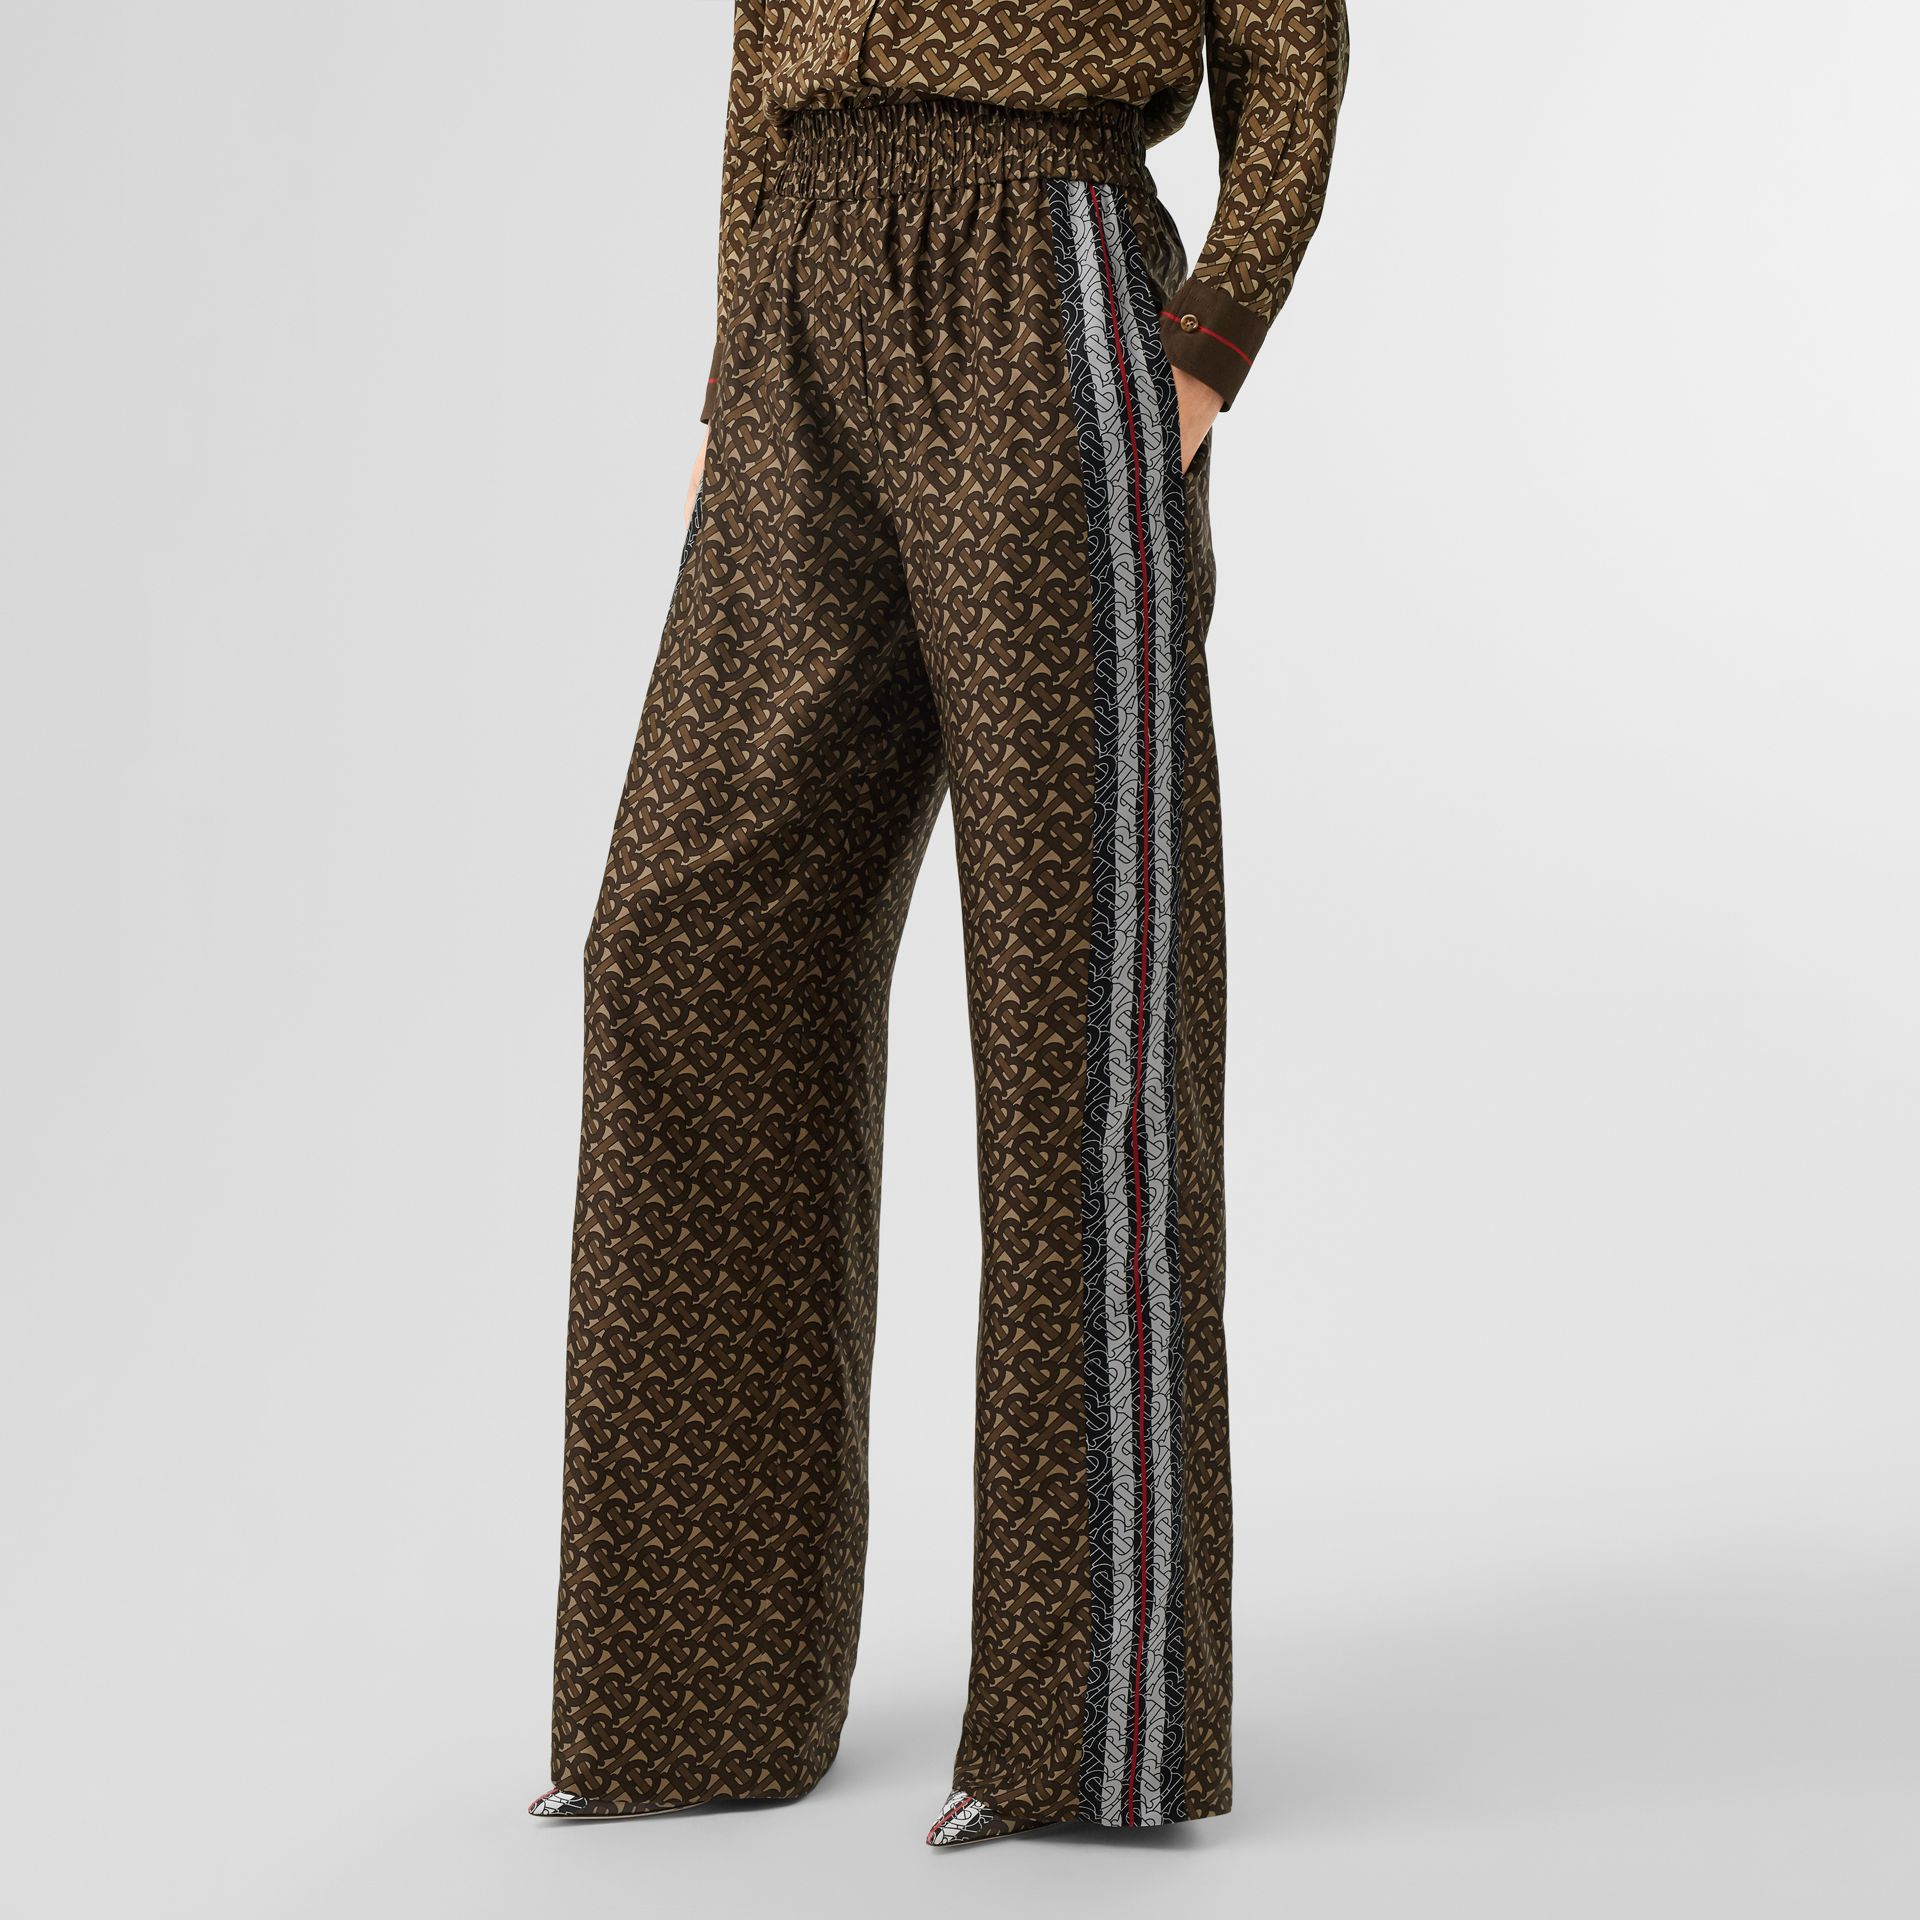 Monogram Stripe Print Silk Trousers in Bridle Brown - Women | Burberry United Kingdom - gallery image 2